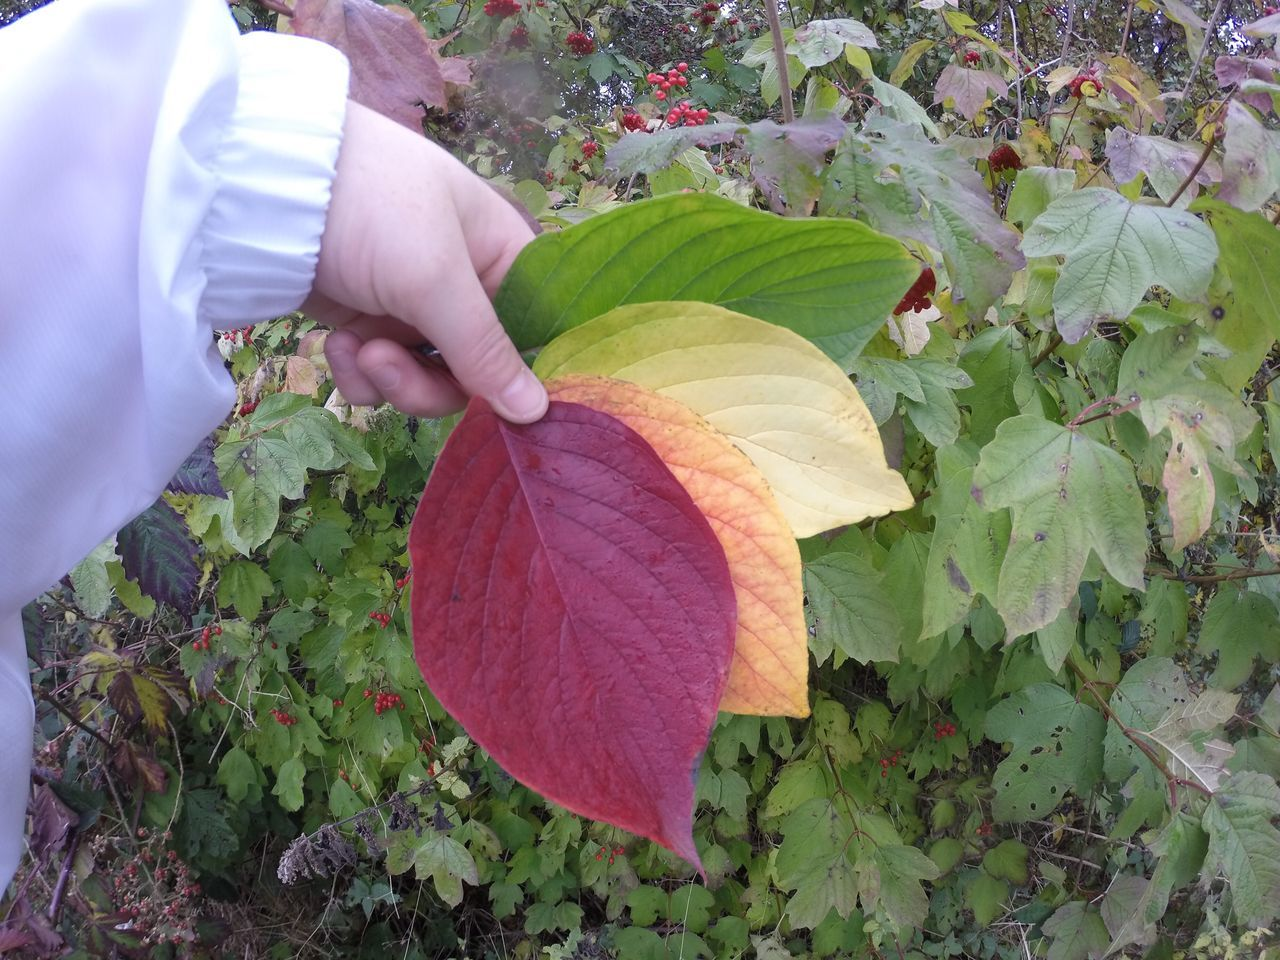 leaf, human hand, real people, one person, holding, freshness, human body part, food and drink, growth, plant, outdoors, fragility, nature, men, day, food, healthy eating, working, occupation, close-up, beauty in nature, flower, adult, people